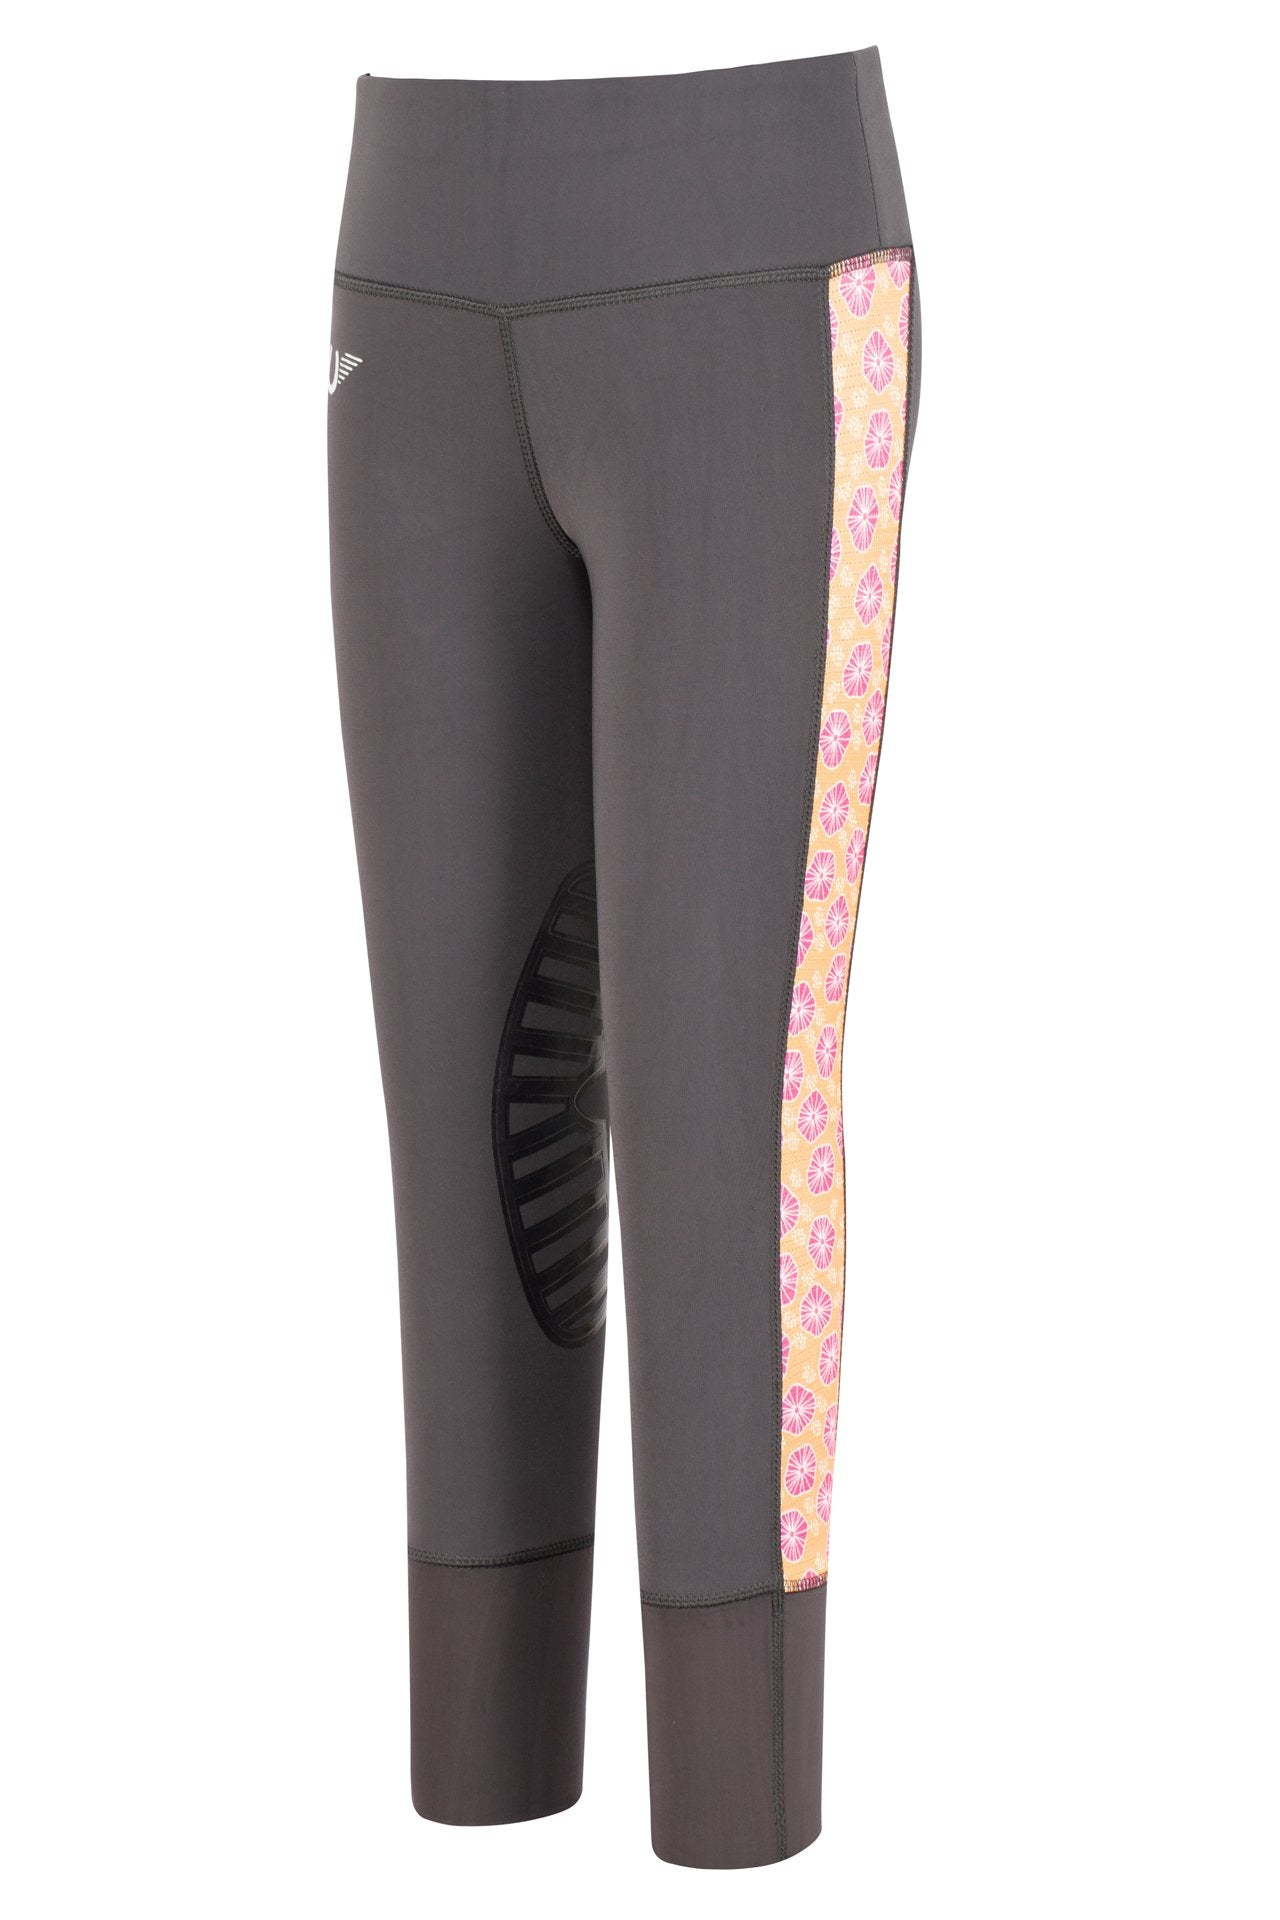 Children's Athena EquiCool Riding Tights - TuffRider - Breeches.com